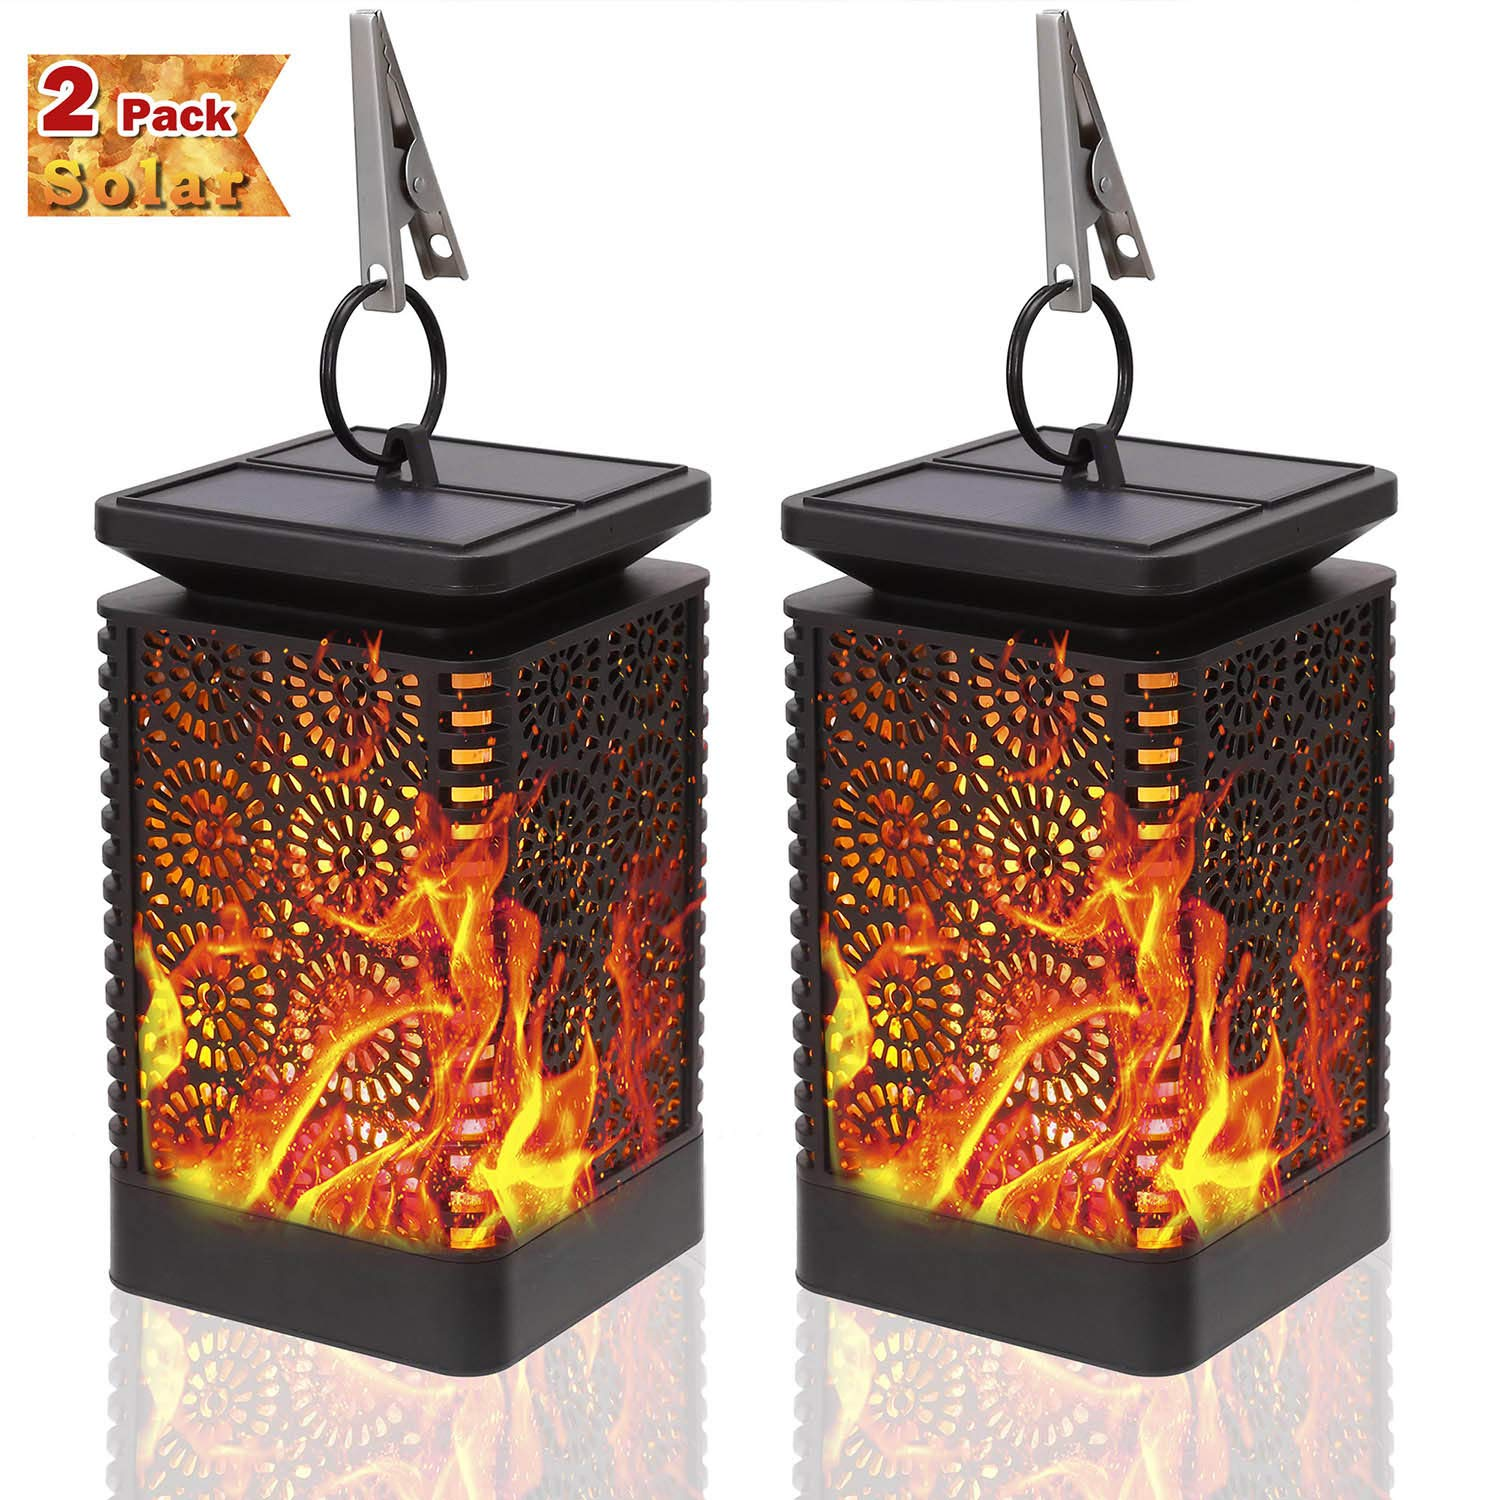 Solar Lantern Outdoor - KeShi Dancing Flames Lights Waterproof Hanging Lanterns Solar Yard Lights Auto On/Off Lighting Dusk to Dawn 99 Bright LED Garden Decor (2 Pack)